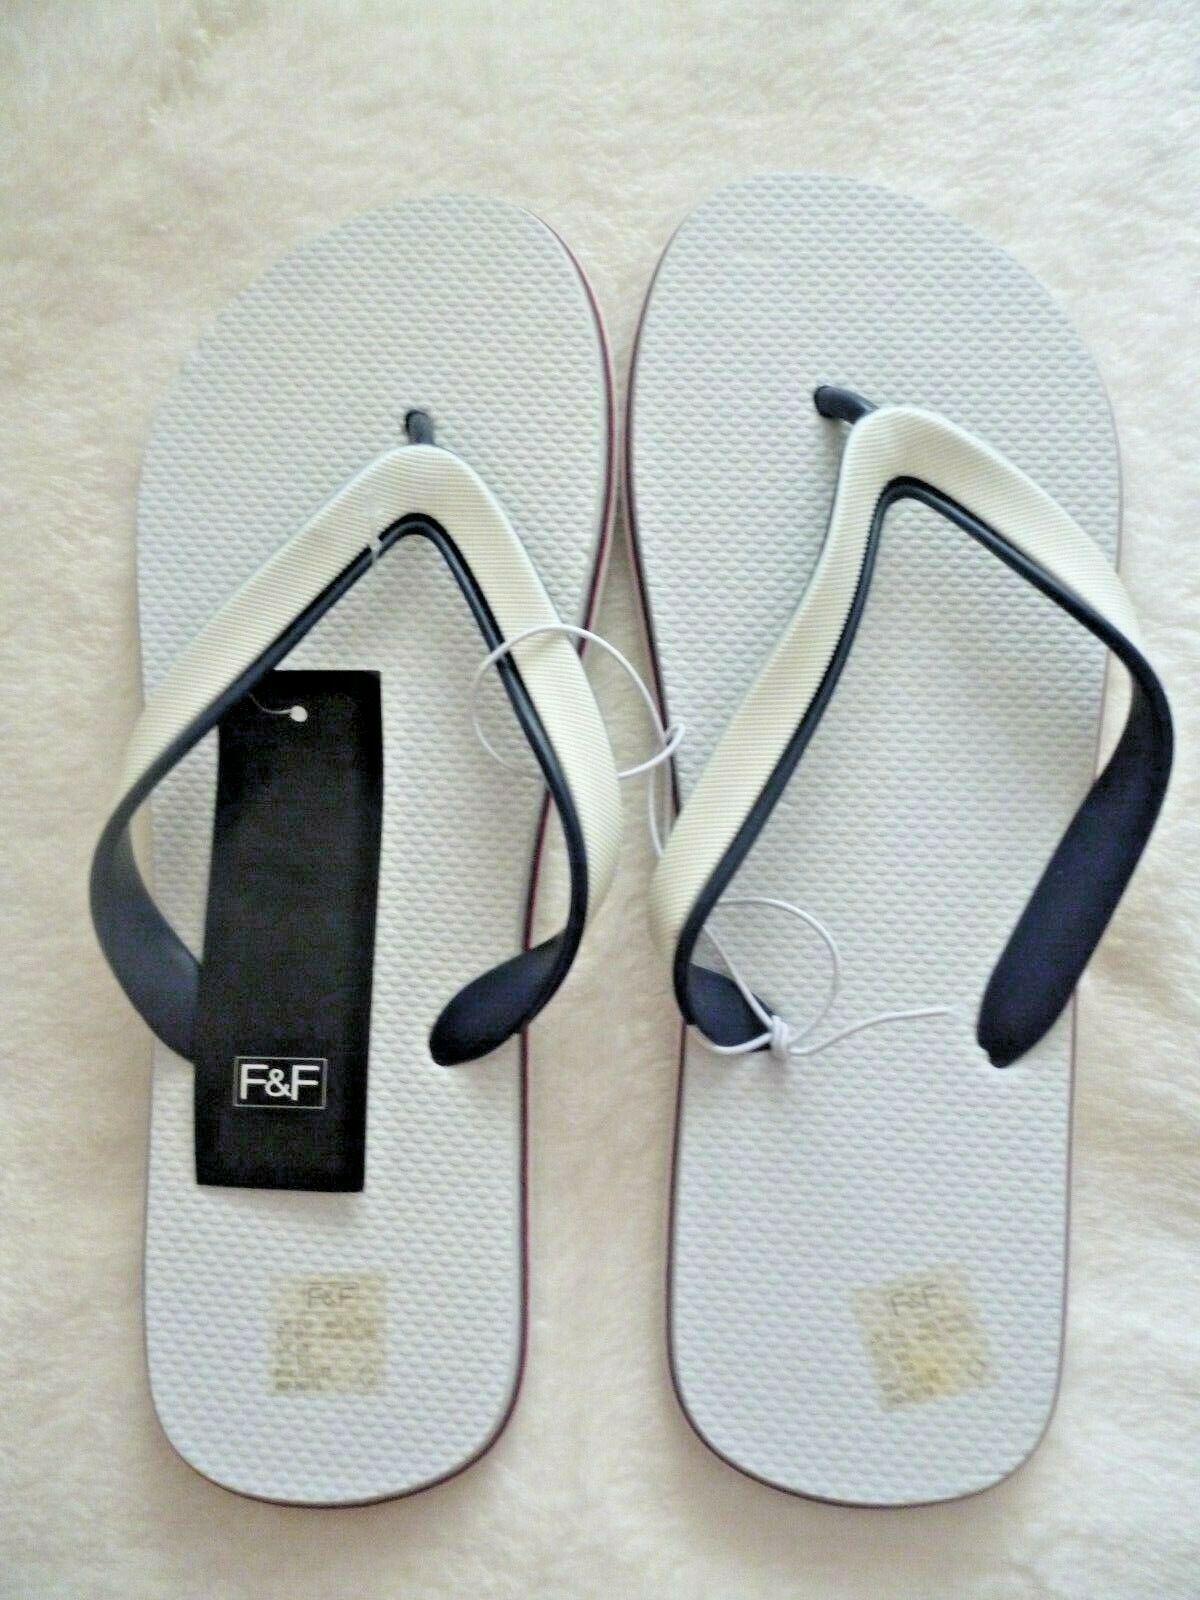 Red/White & Blue Flip Flops/Toe Post Holiday SHoe Size 9-10 EUR 43-44 BNWT